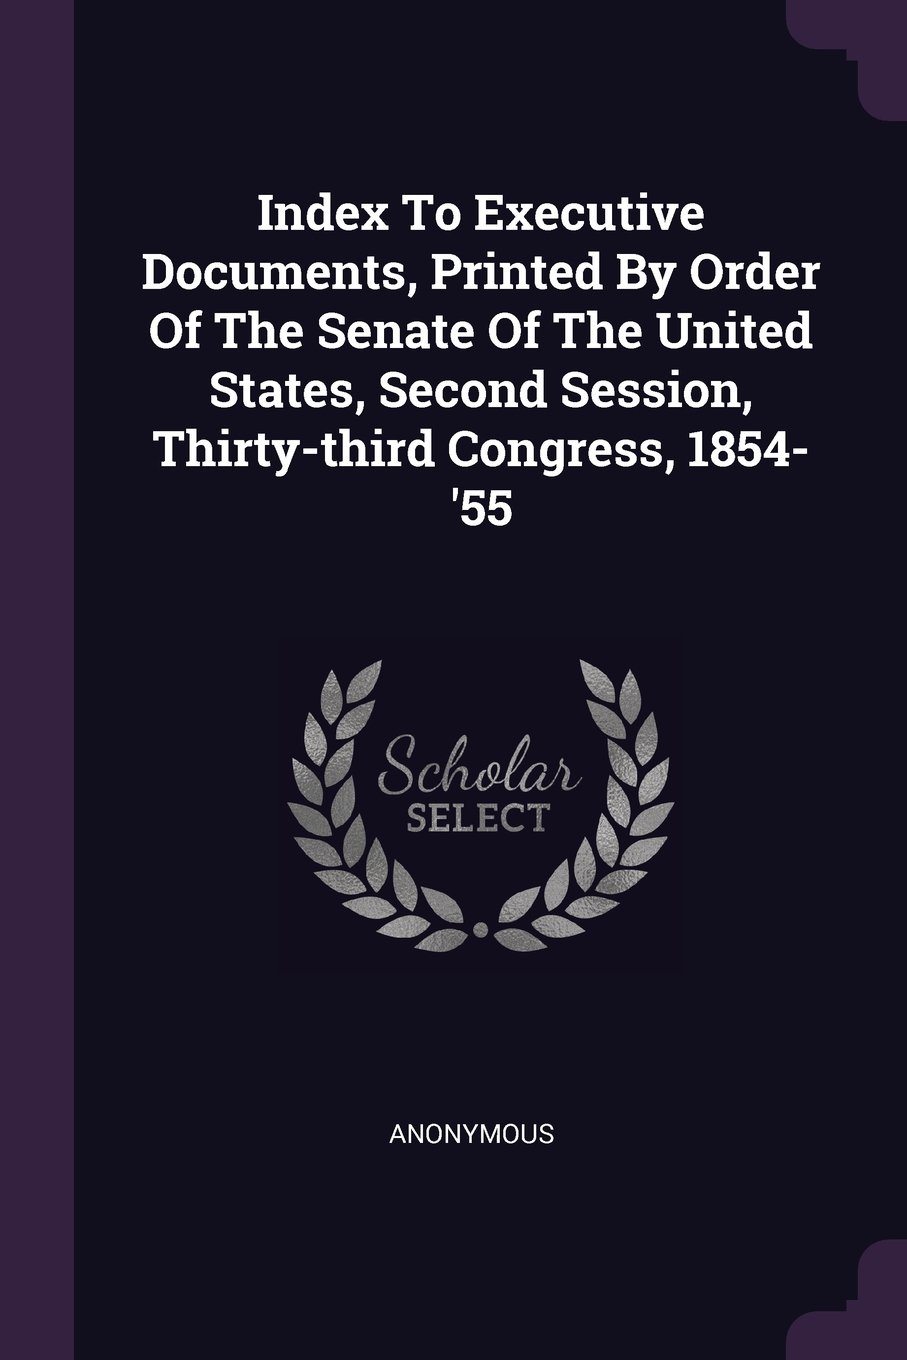 Index To Executive Documents, Printed By Order Of The Senate Of The United States, Second Session, Thirty-third Congress, 1854-'55 PDF